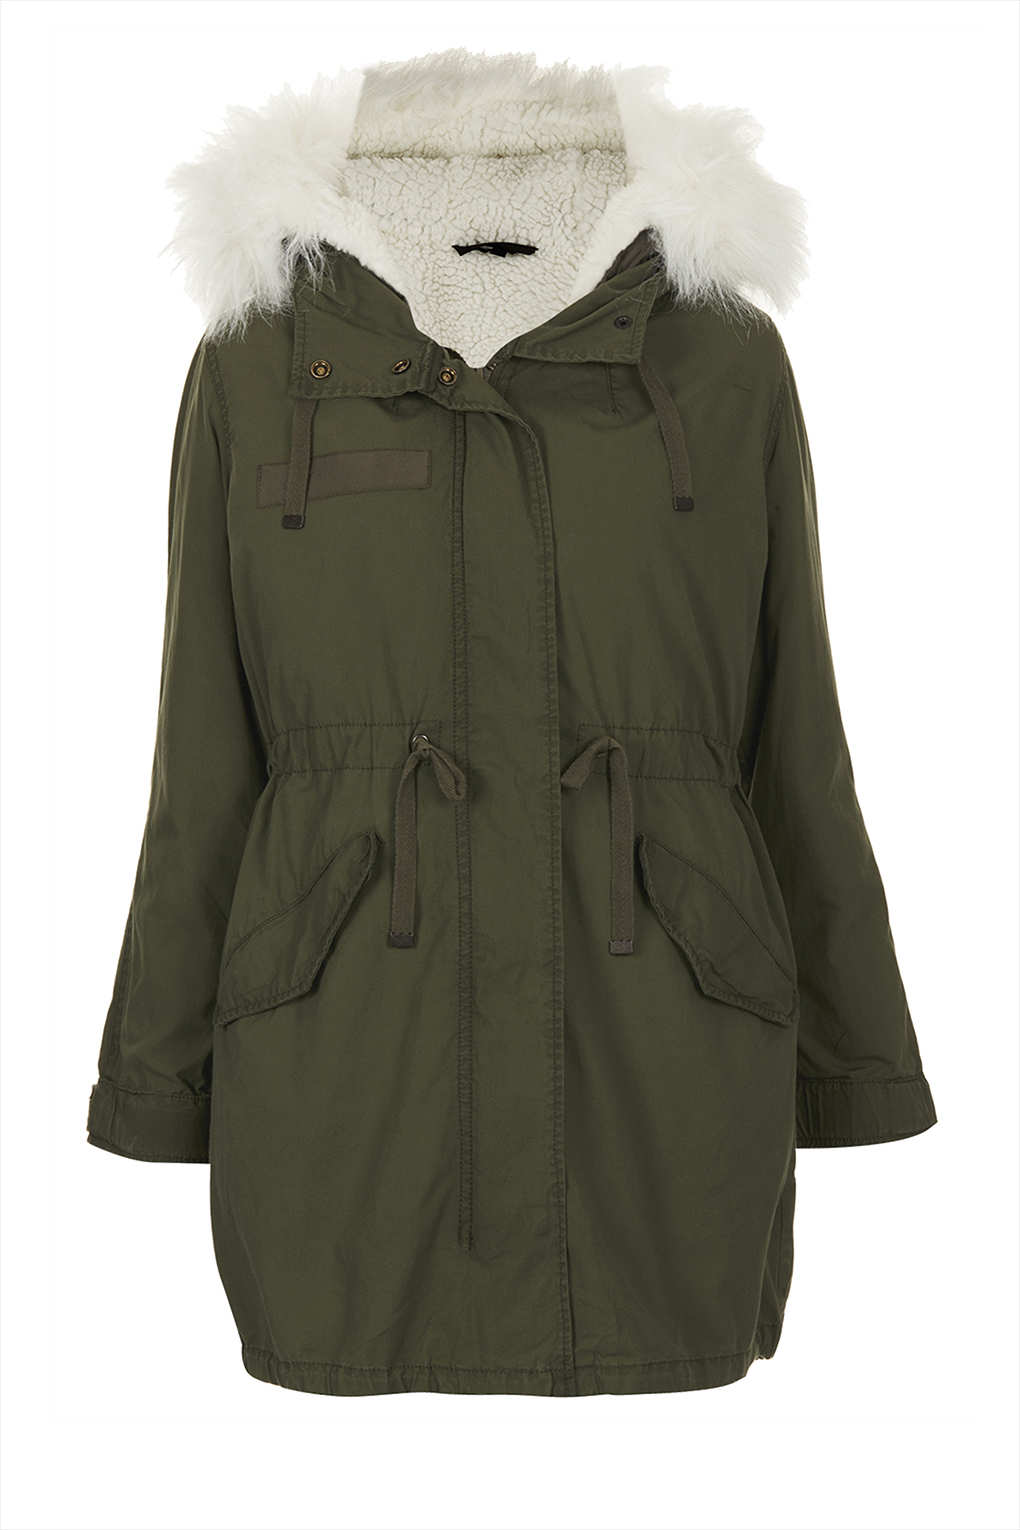 Top Shop Parka Coats